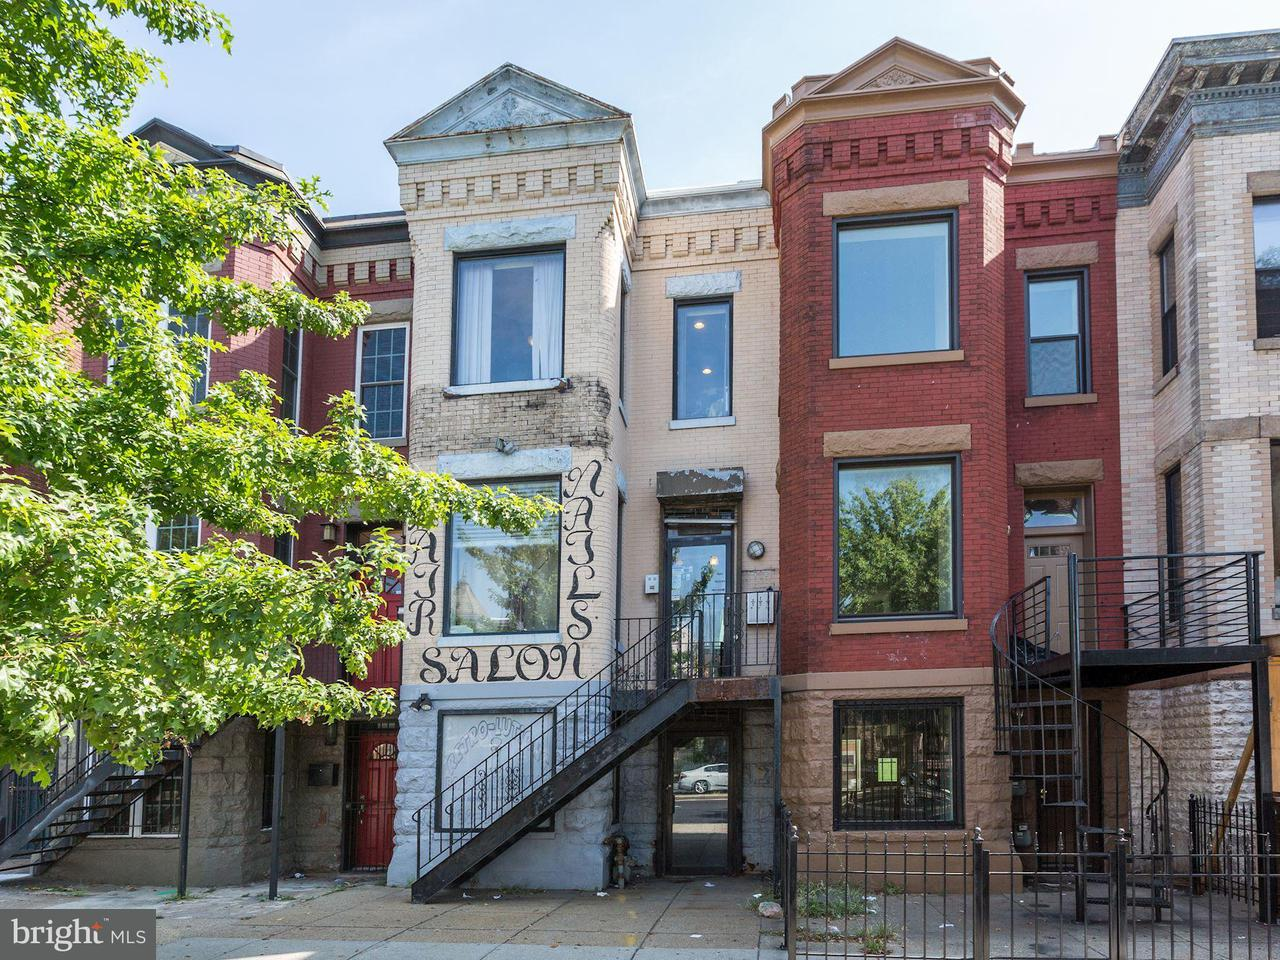 Townhouse for Sale at 1709 CAPITOL ST NE 1709 CAPITOL ST NE Washington, District Of Columbia 20002 United States